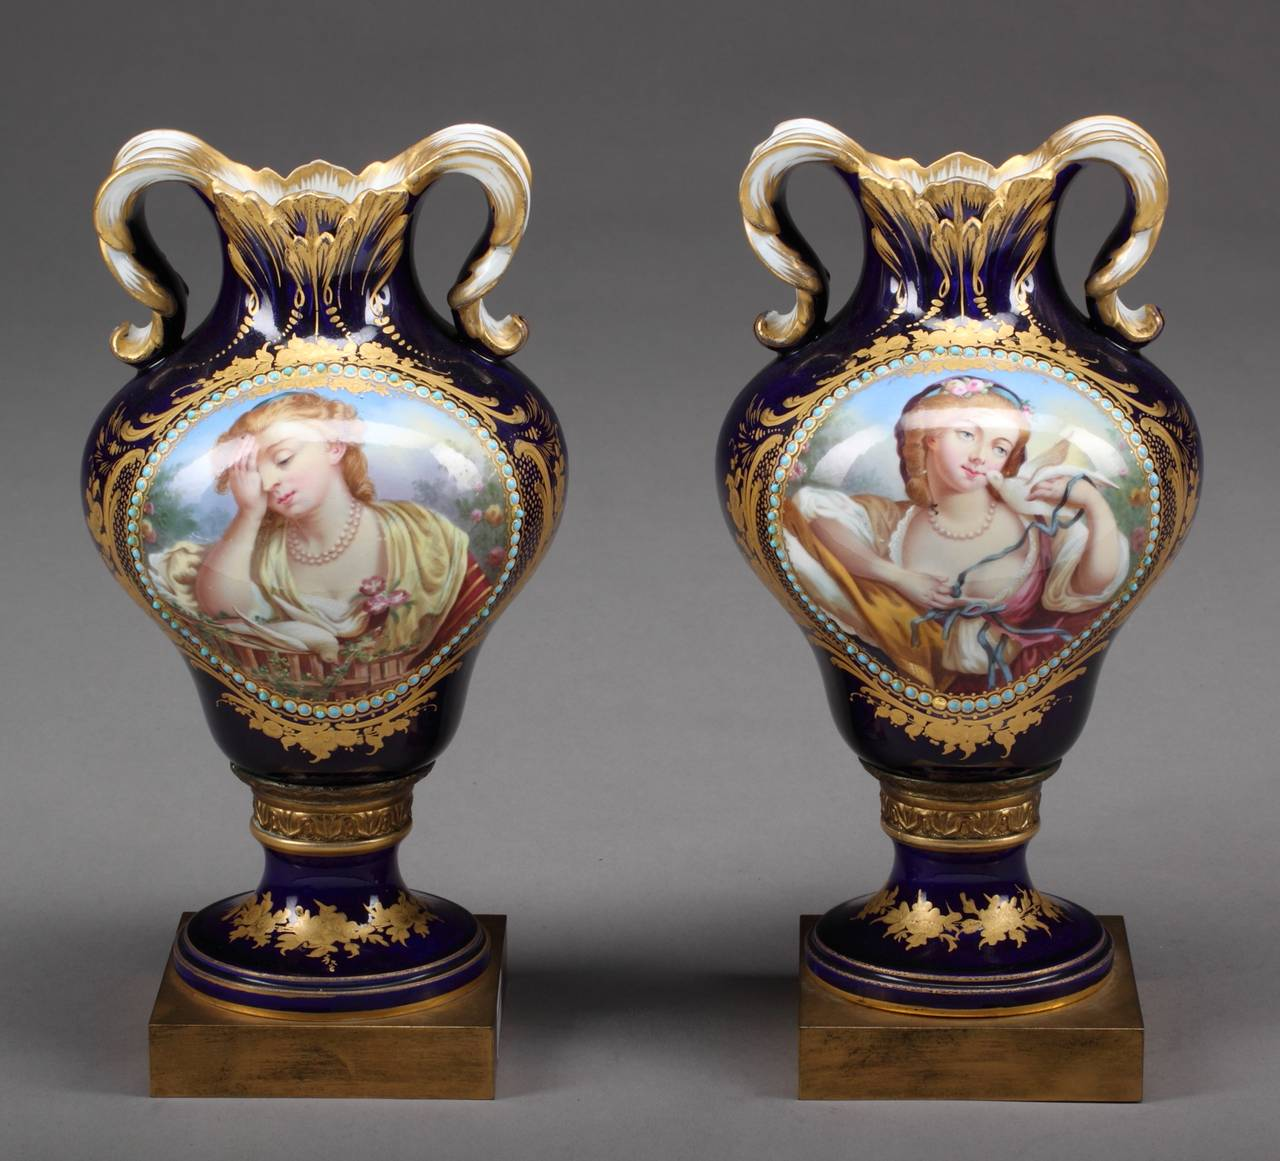 Fine Pair Of French Hand Painted S 232 Vres And Jeweled Portrait Vases For Sale At 1stdibs